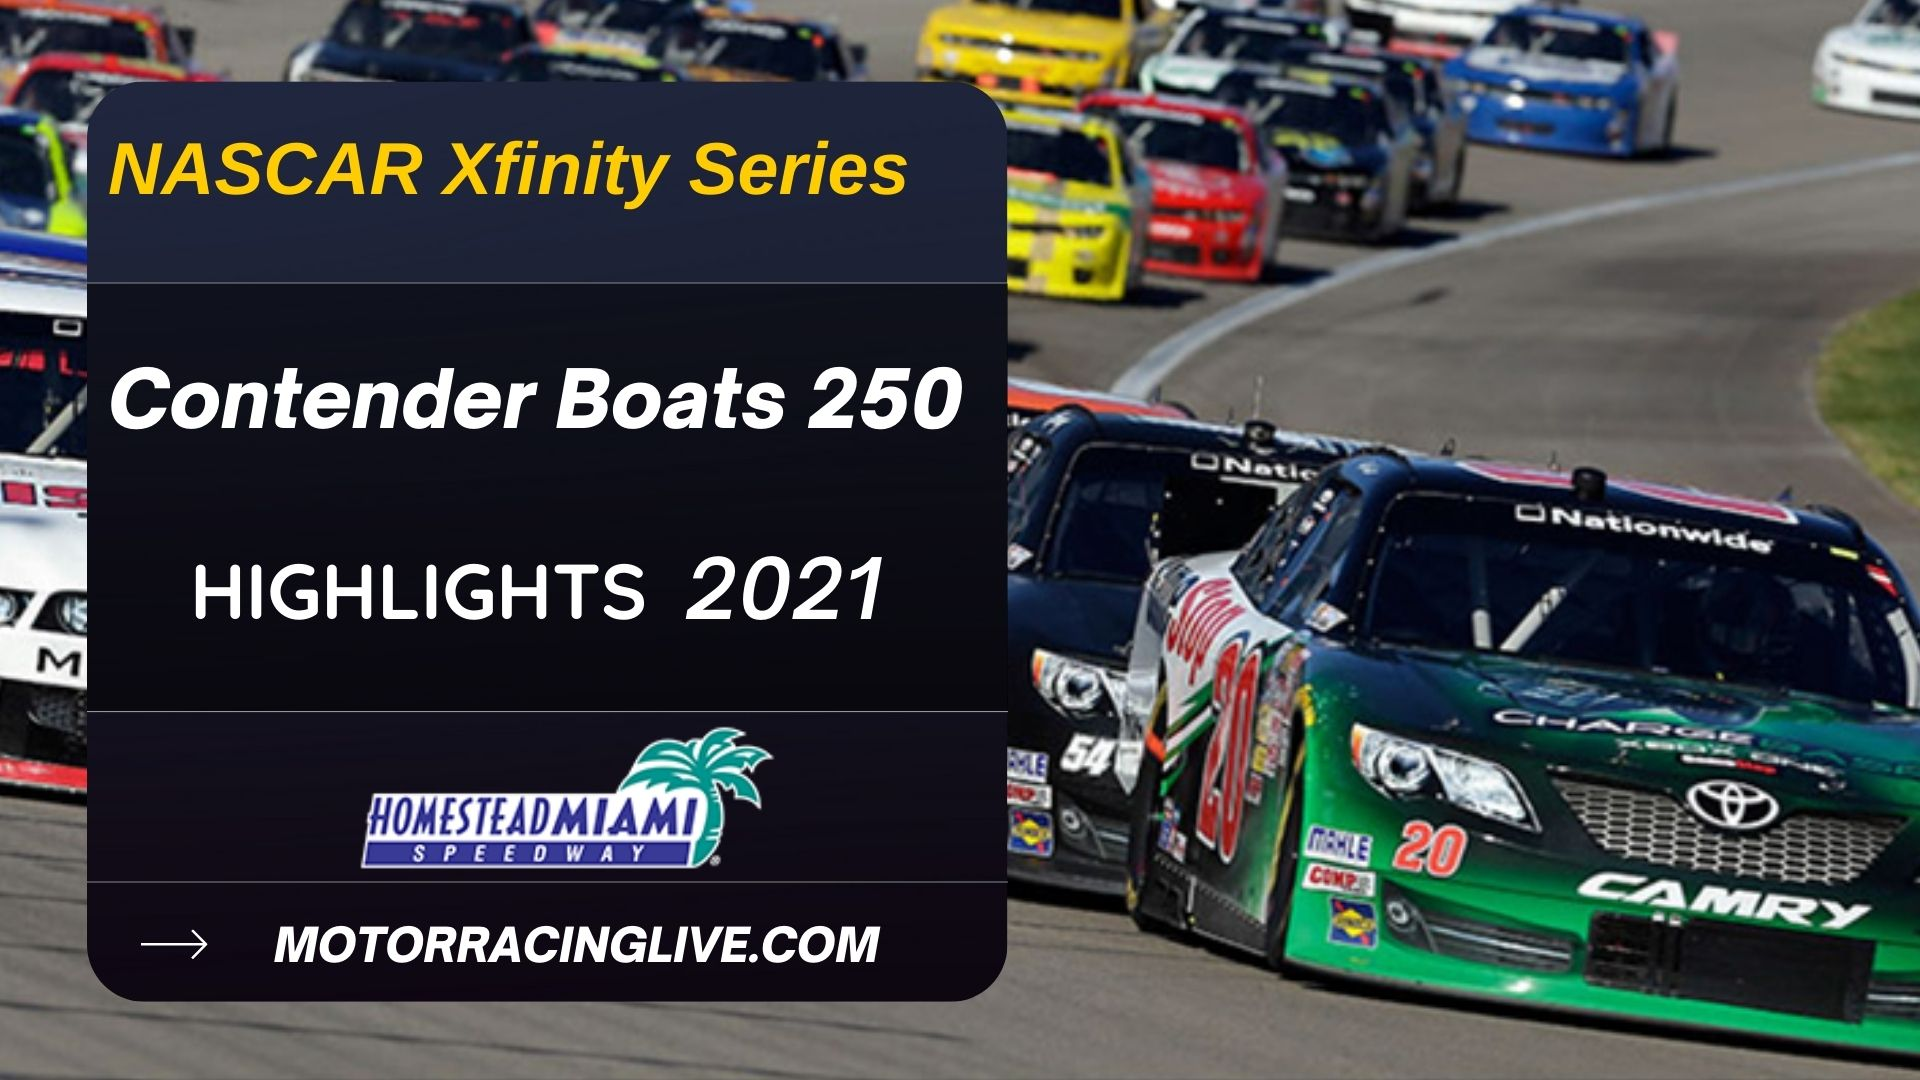 Contender Boats 250 Highlights 2021 NASCAR Xfinity Series